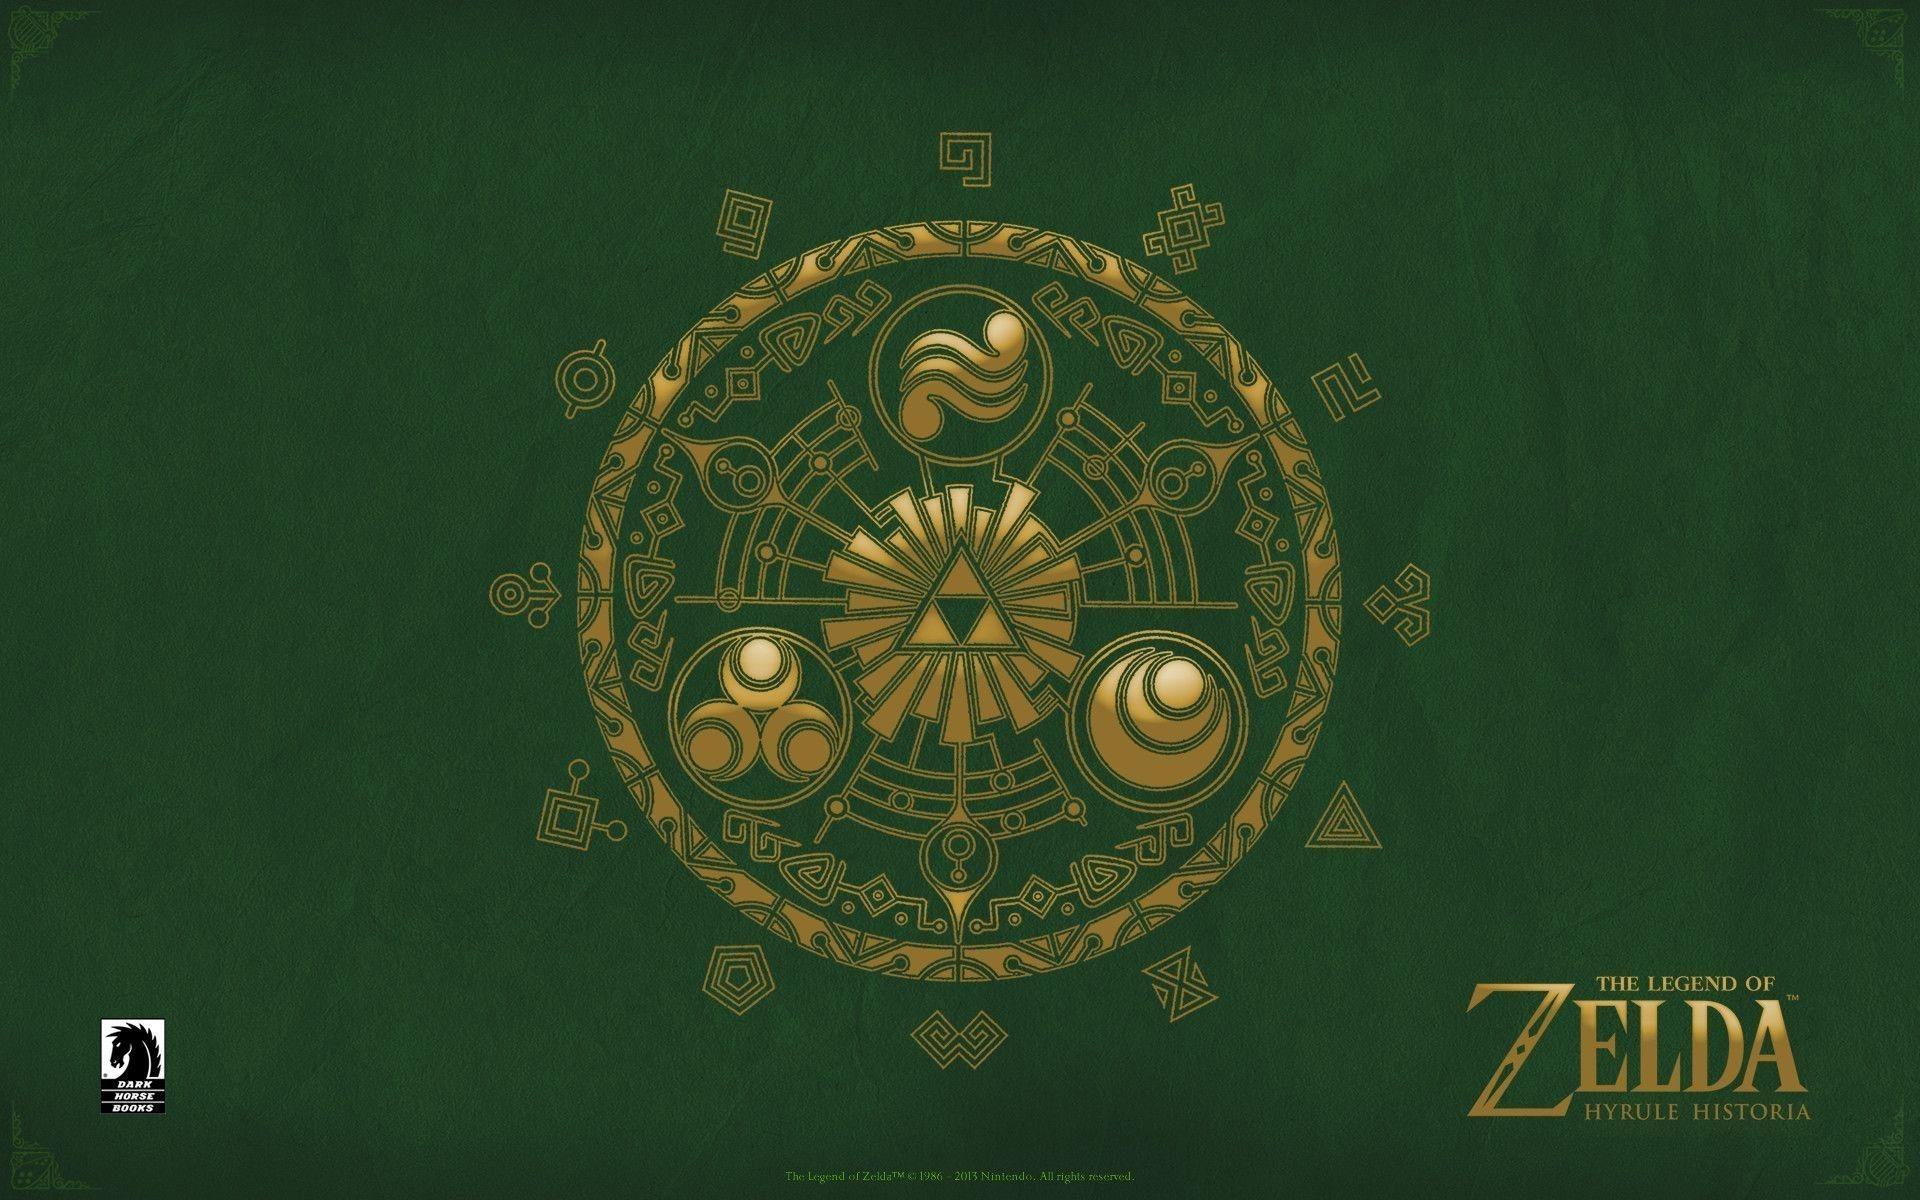 legend of zelda desktop wallpapers - wallpaper cave